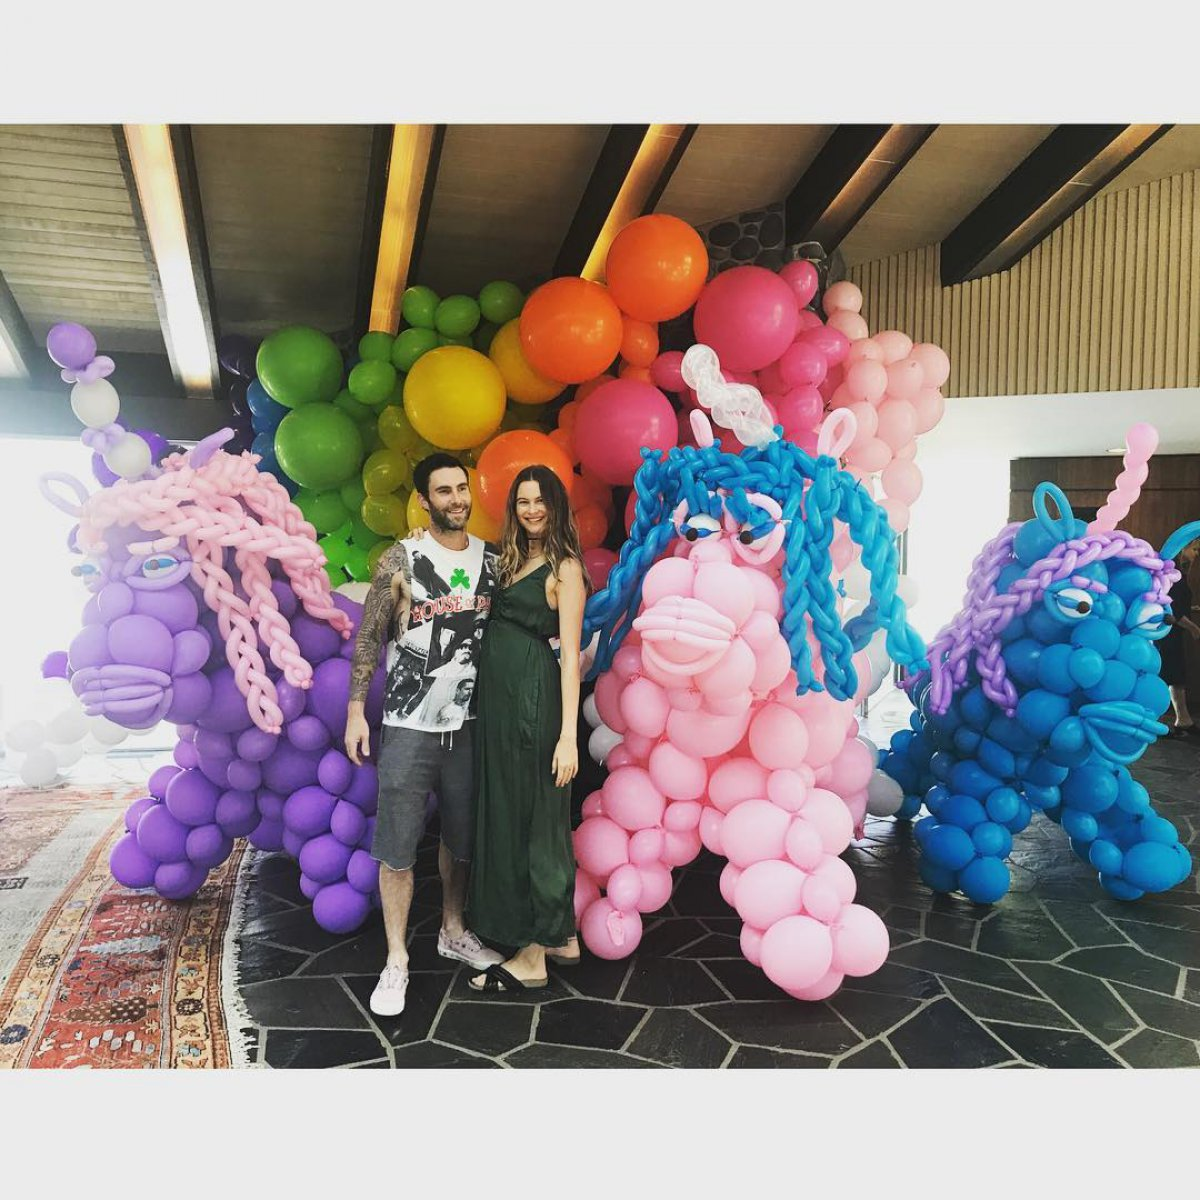 Adam levine celebrates his daughter dusty roses first birthday behati prinslooinstagram nvjuhfo Images